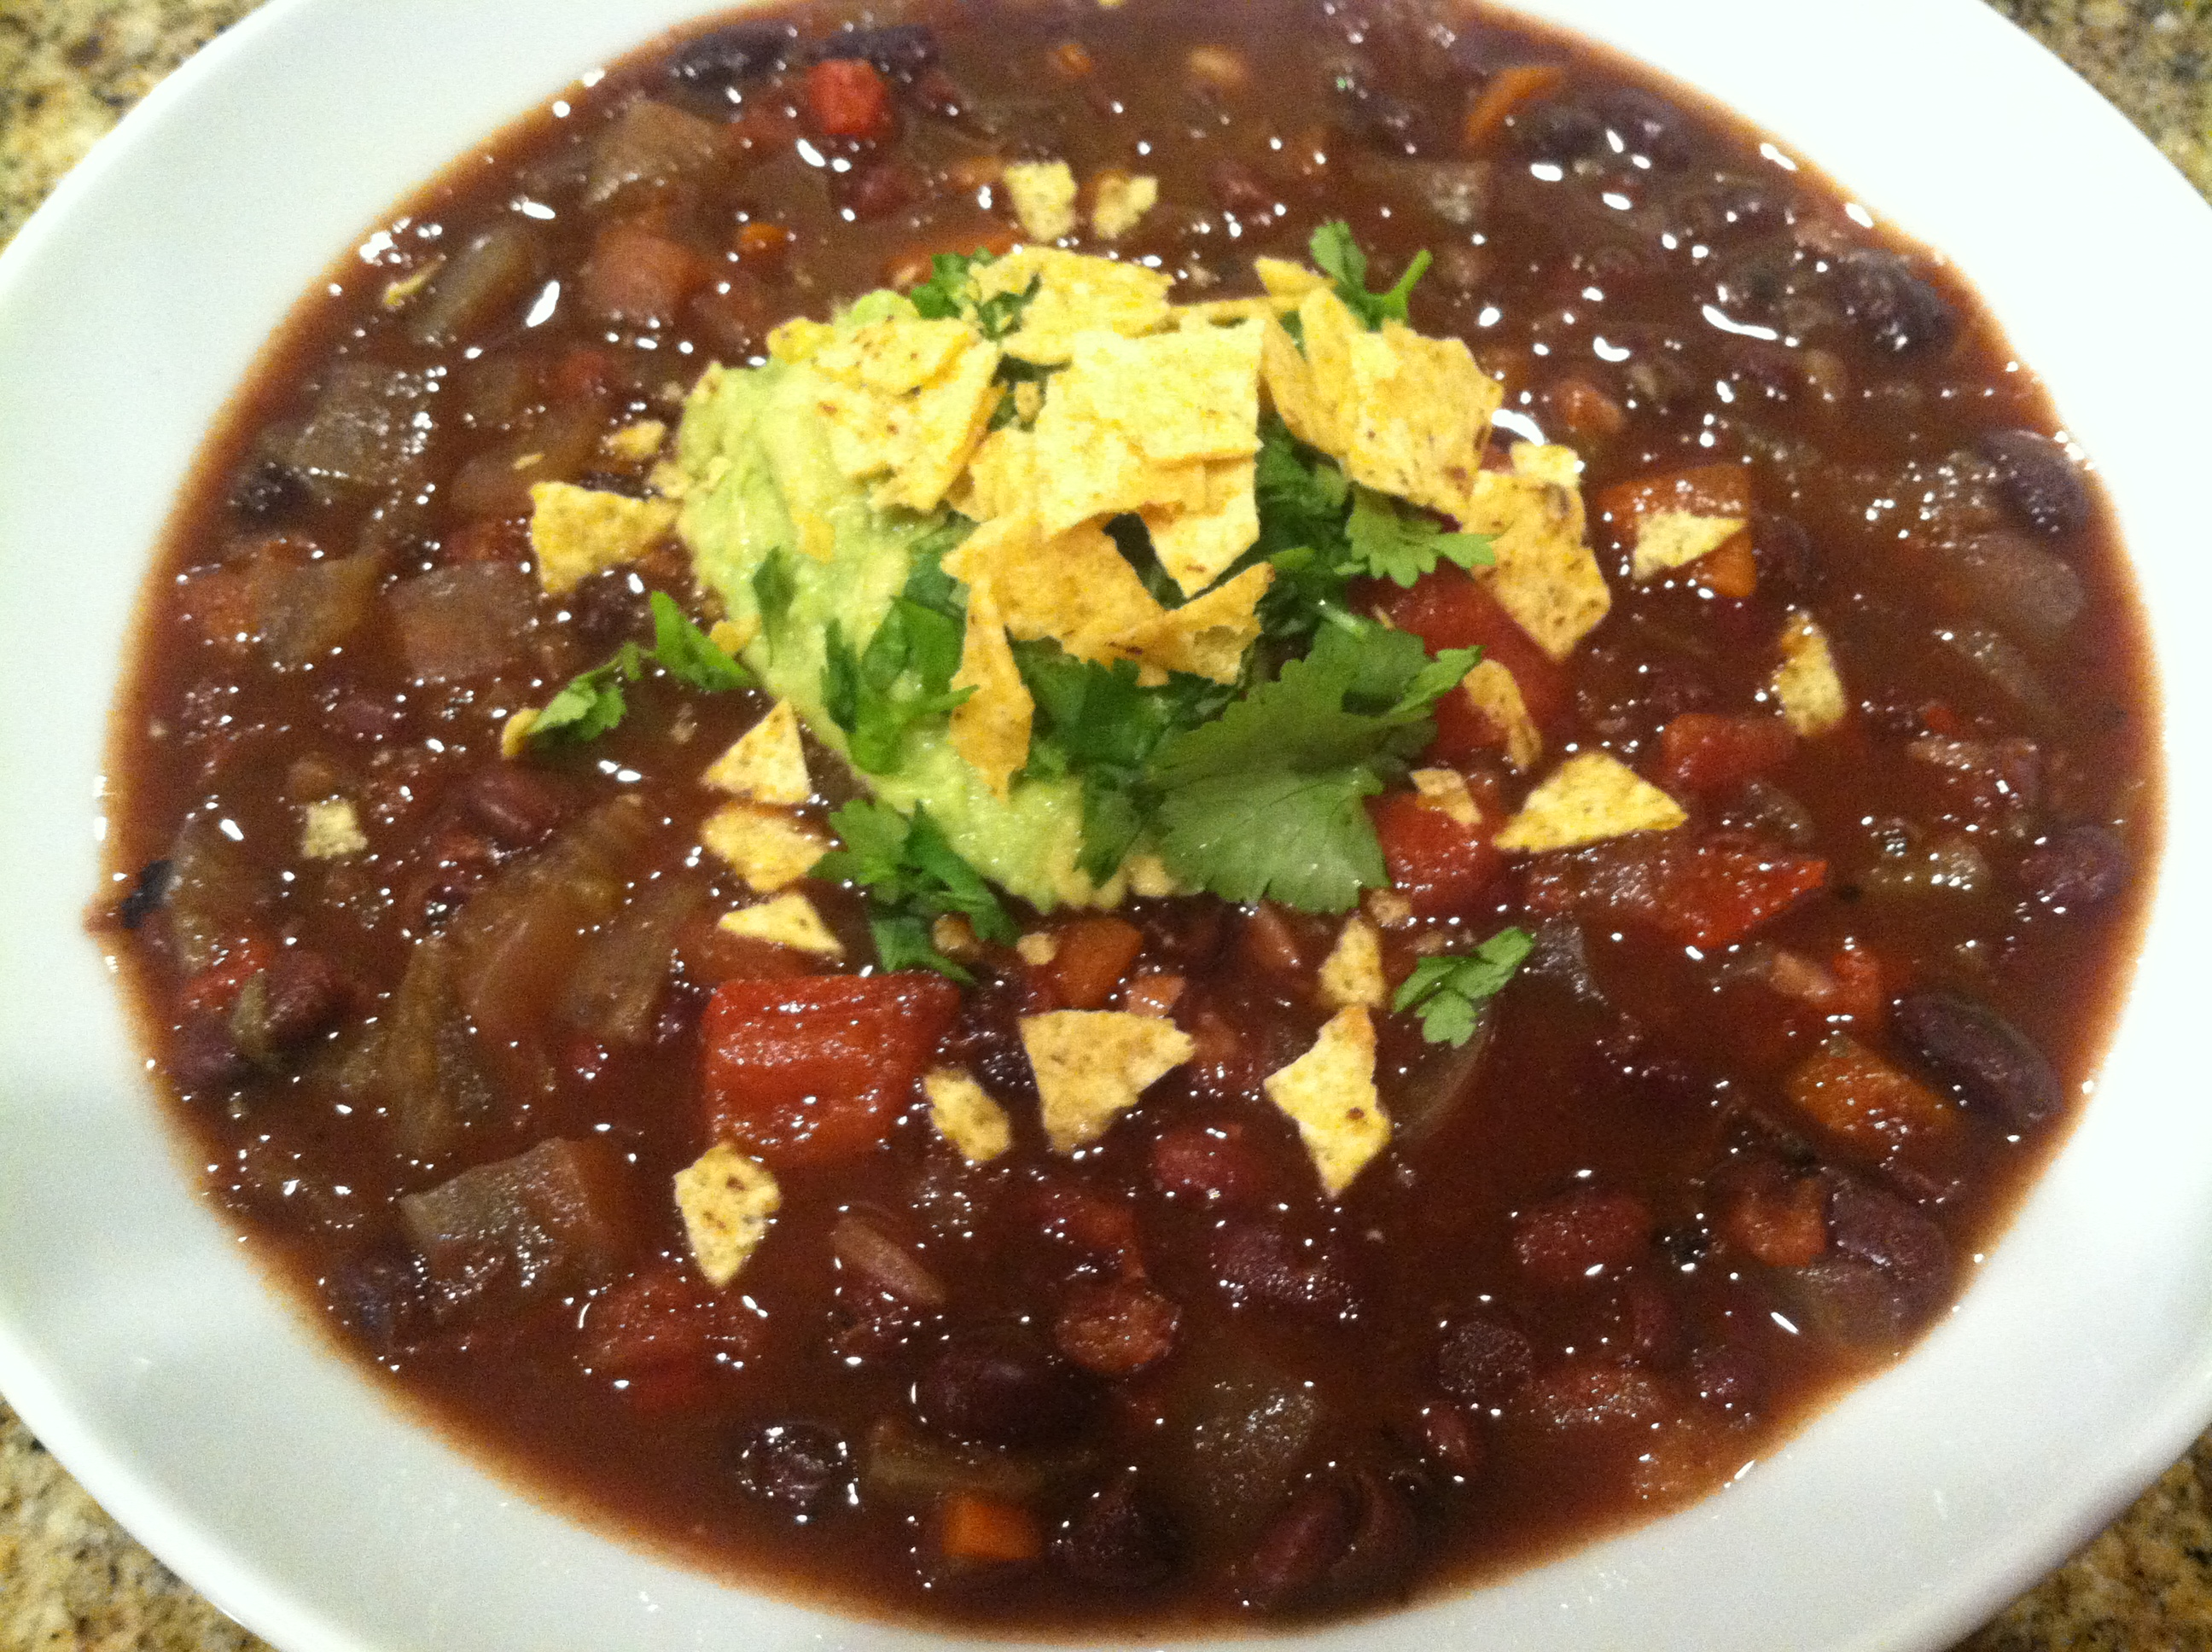 Black Bean Soup with Guacamole